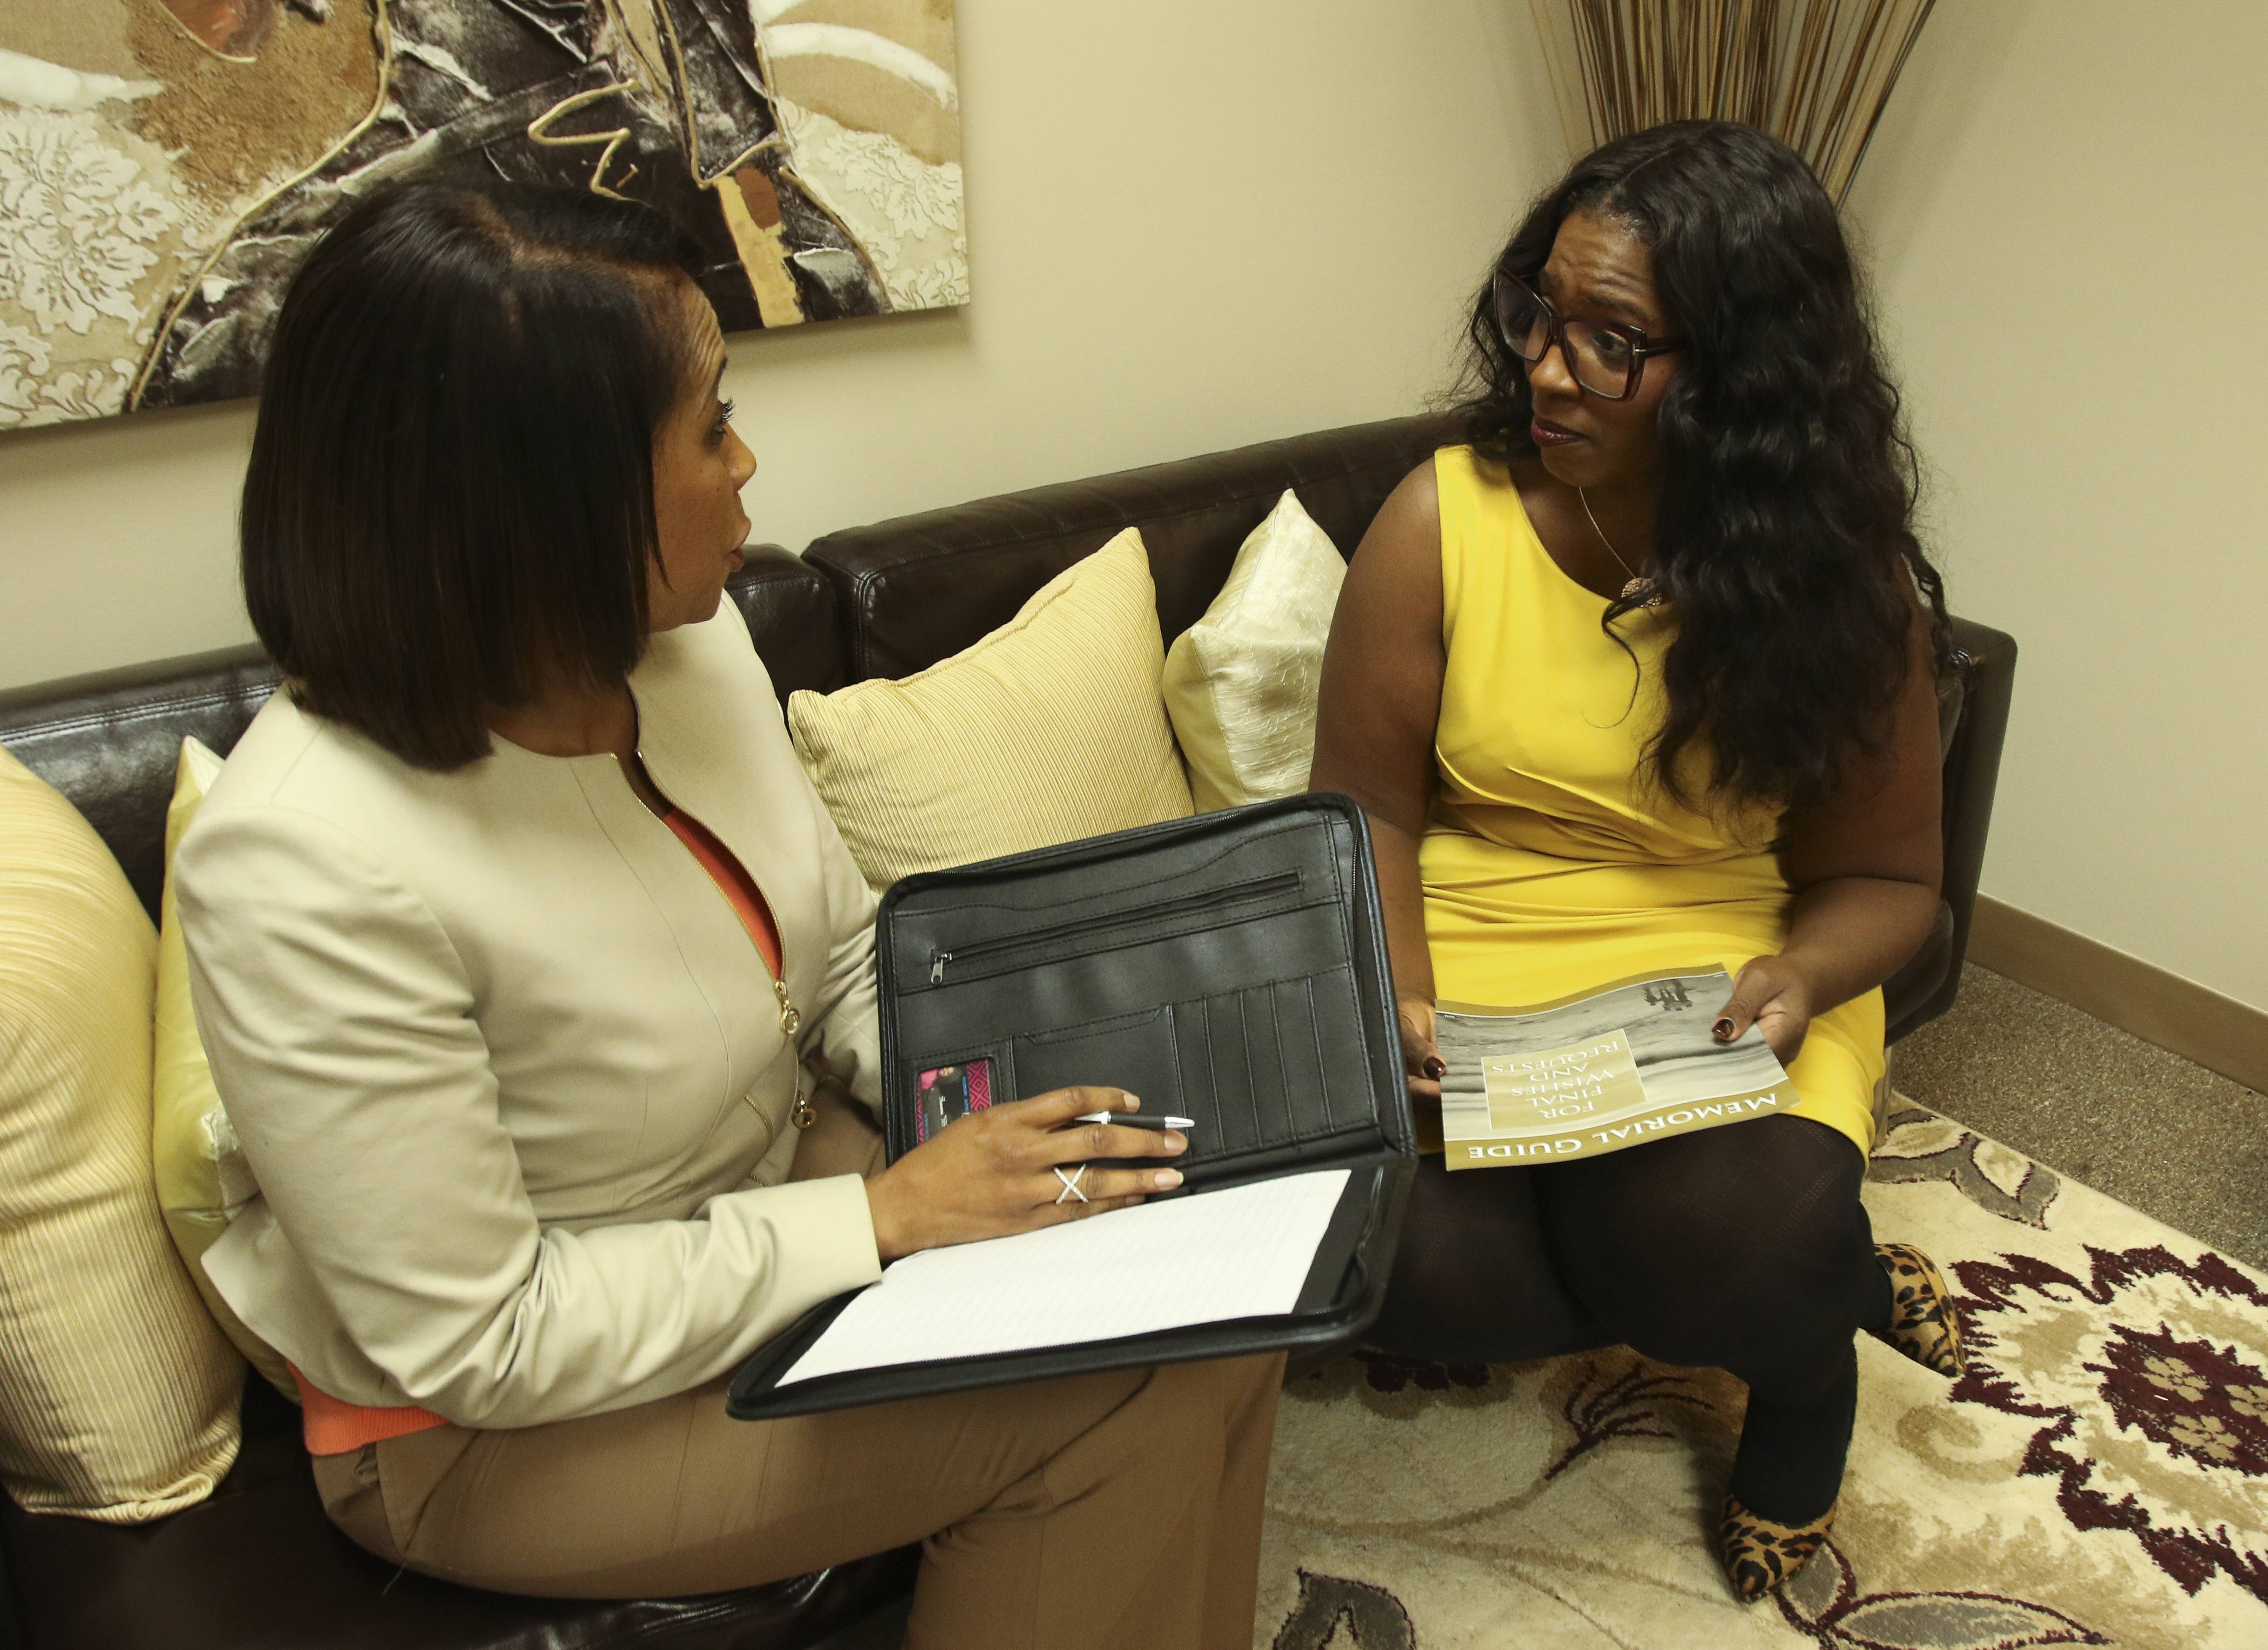 Shauna Weatherspoon with Weatherspoon & Associates in Naperville, chats with business associate Angela Caffey, division manager with Primeria.